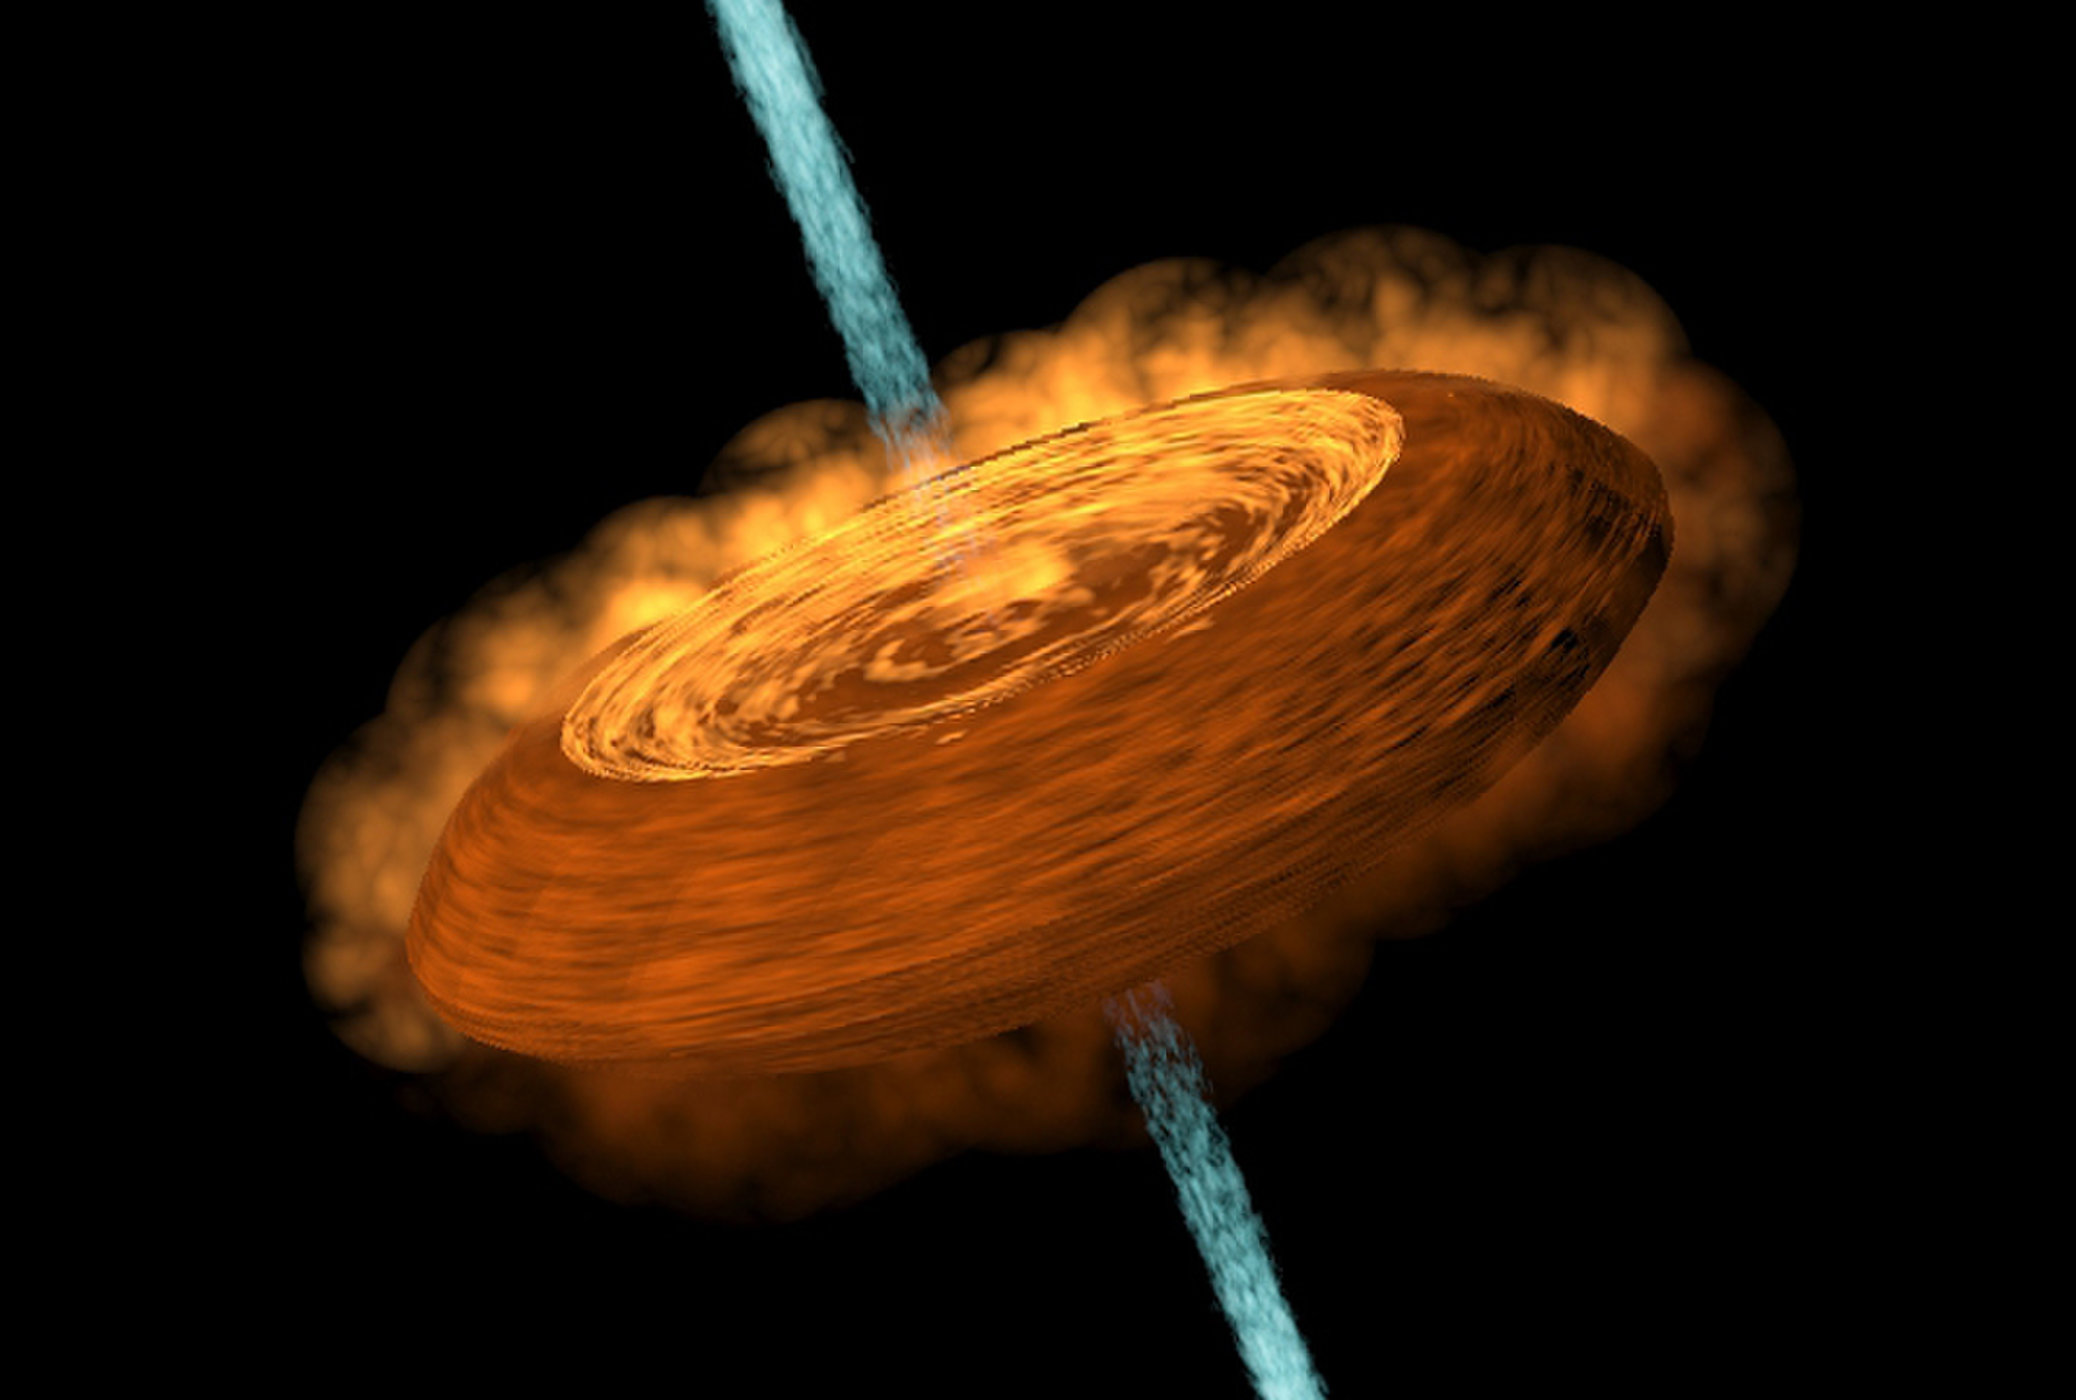 An artist's illustration of the HH212 protostellar disk, which looks a lot like a hamburger.